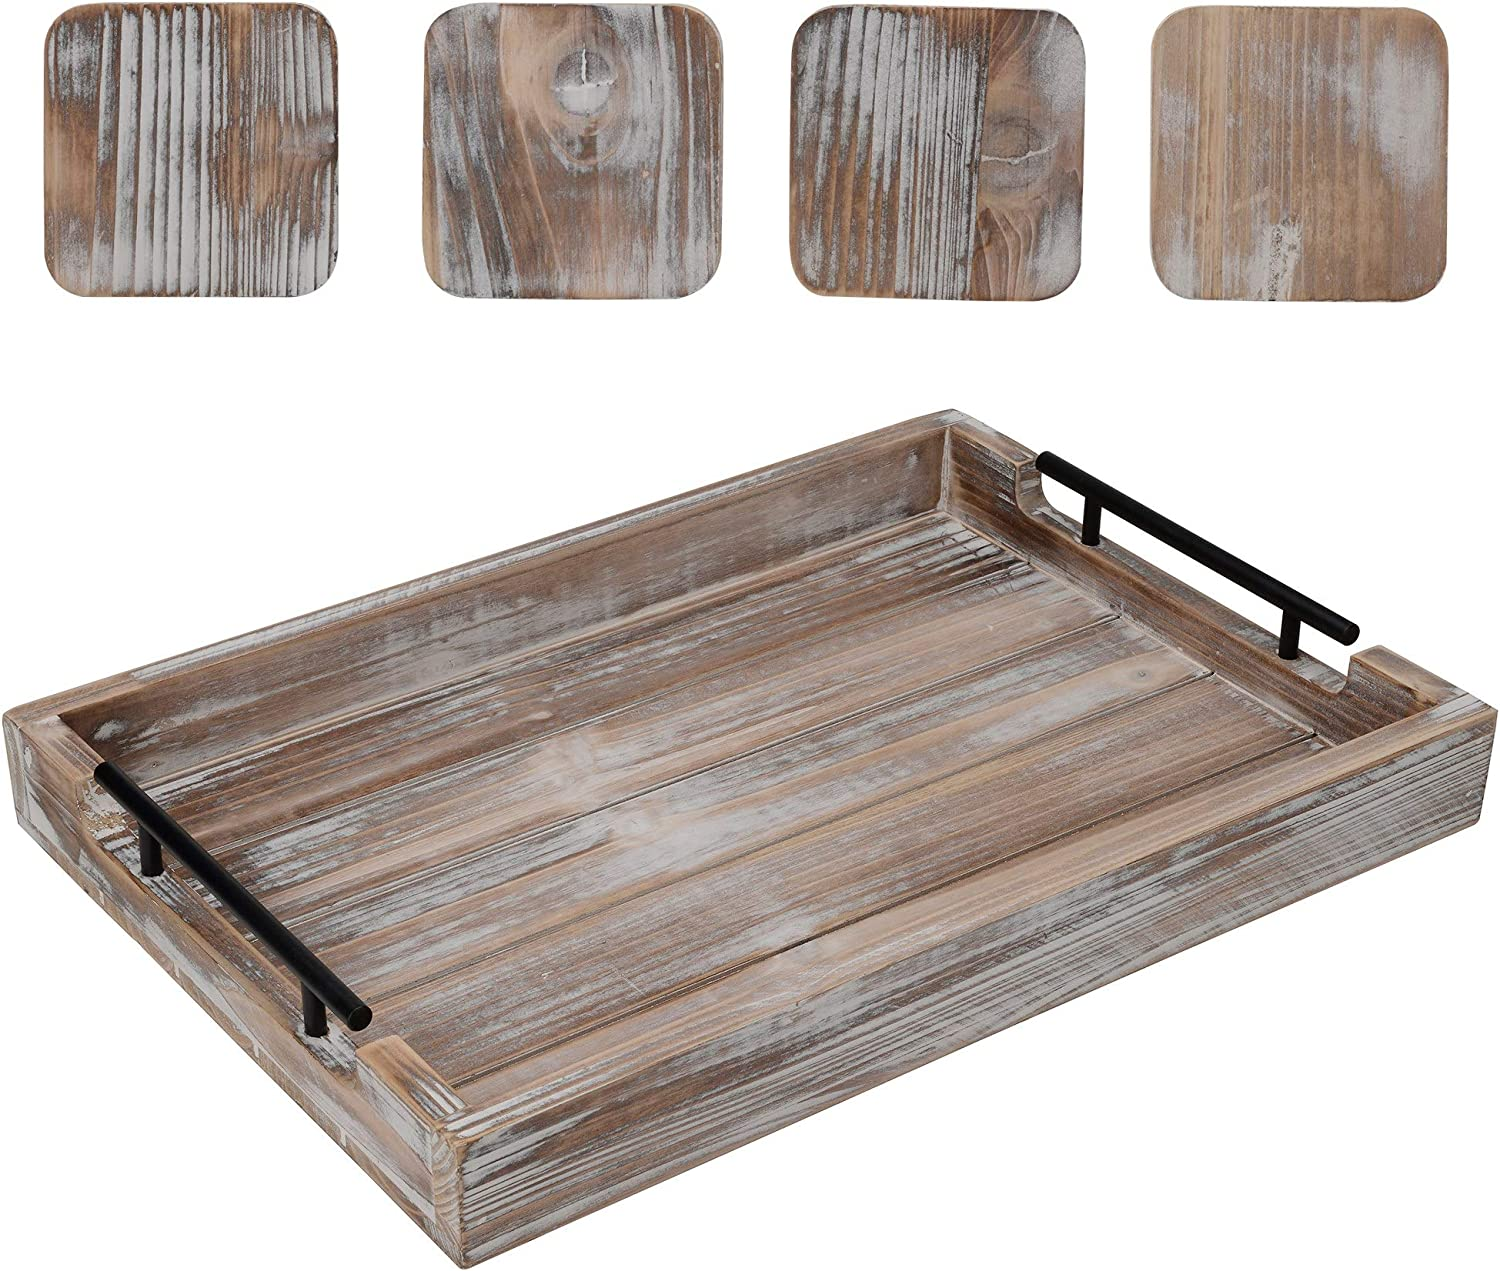 Coffee Table Tray Indianapolis Mall with 25% OFF Ottoman Decorative Rustic Coasters